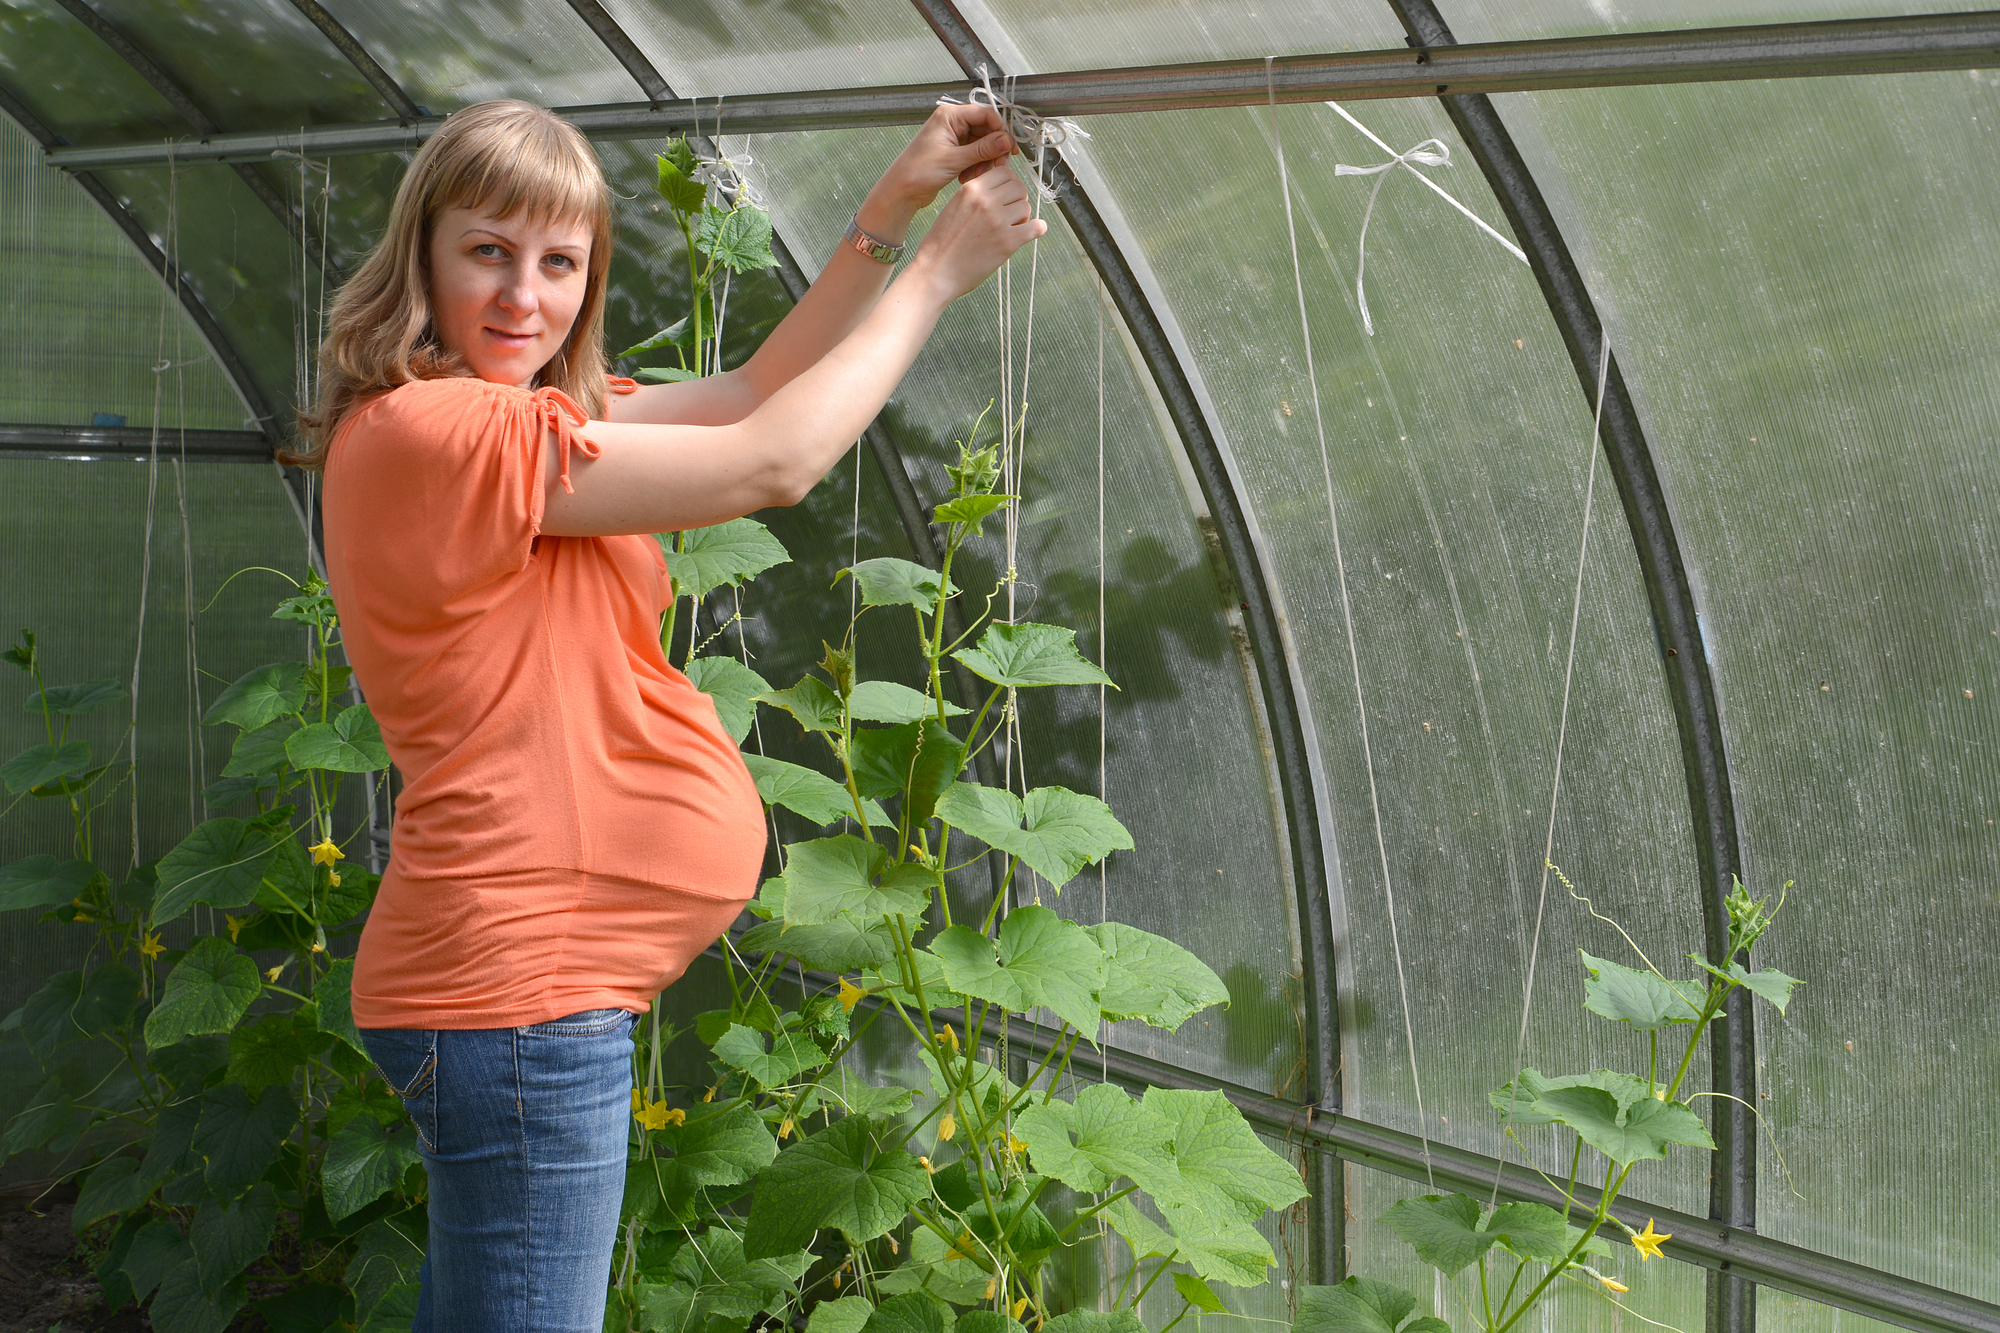 A Guide to Gardening While Pregnant